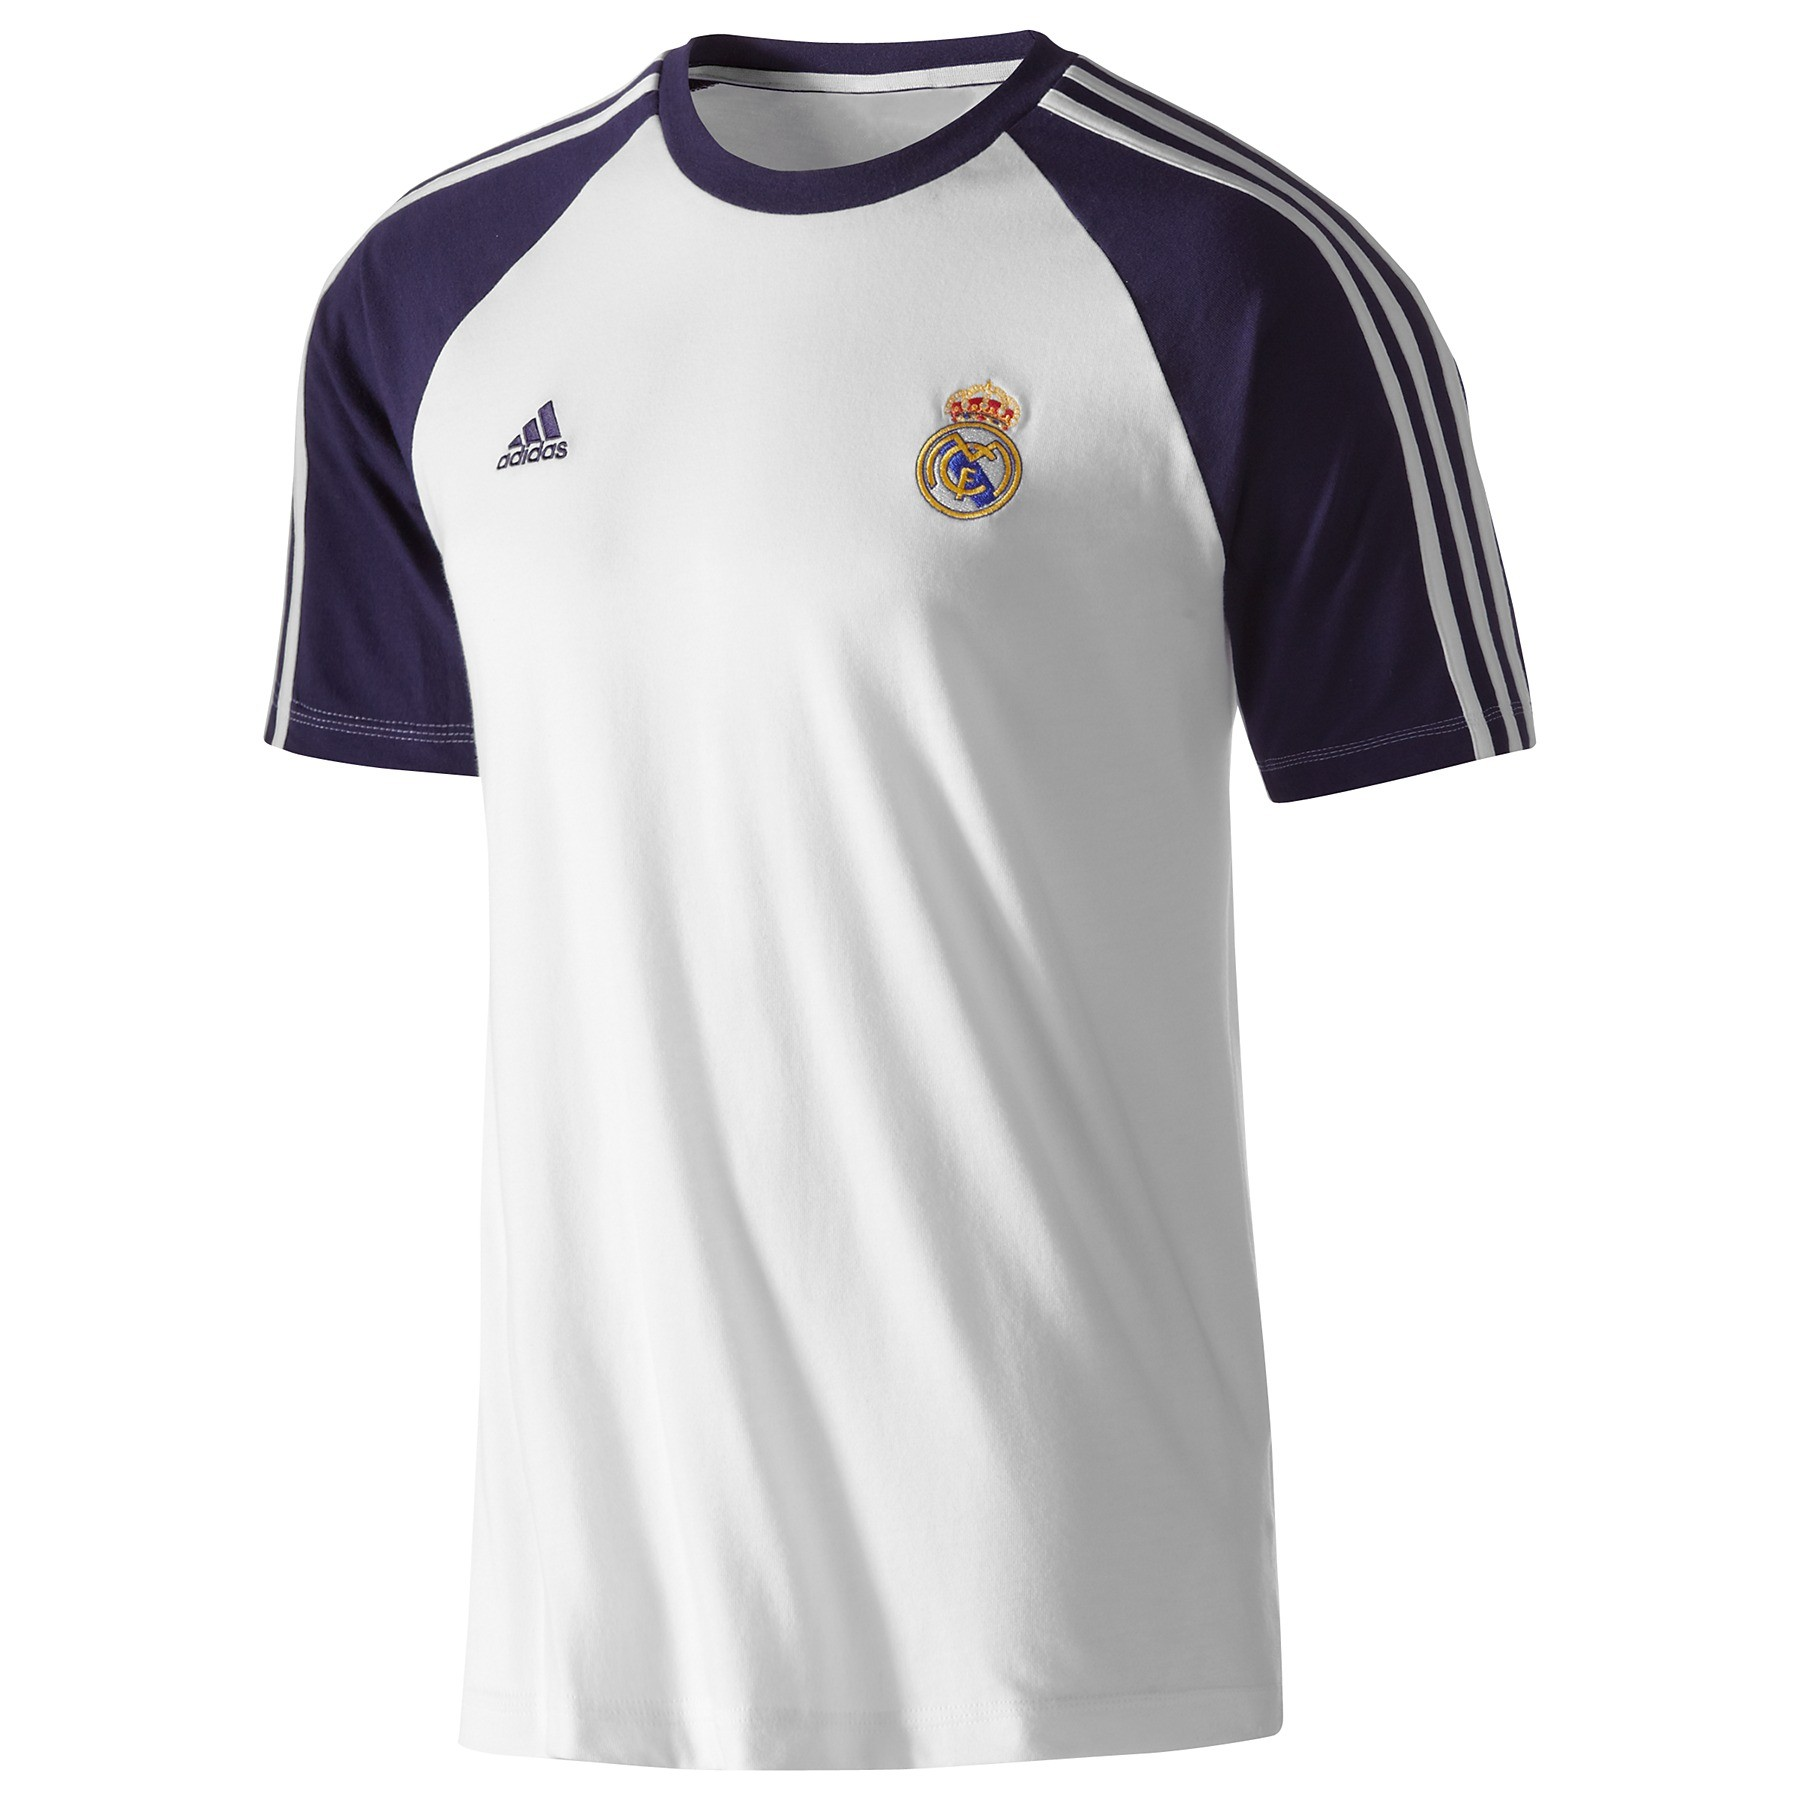 adidas real madrid herren t shirt wei cotton shirt tee. Black Bedroom Furniture Sets. Home Design Ideas